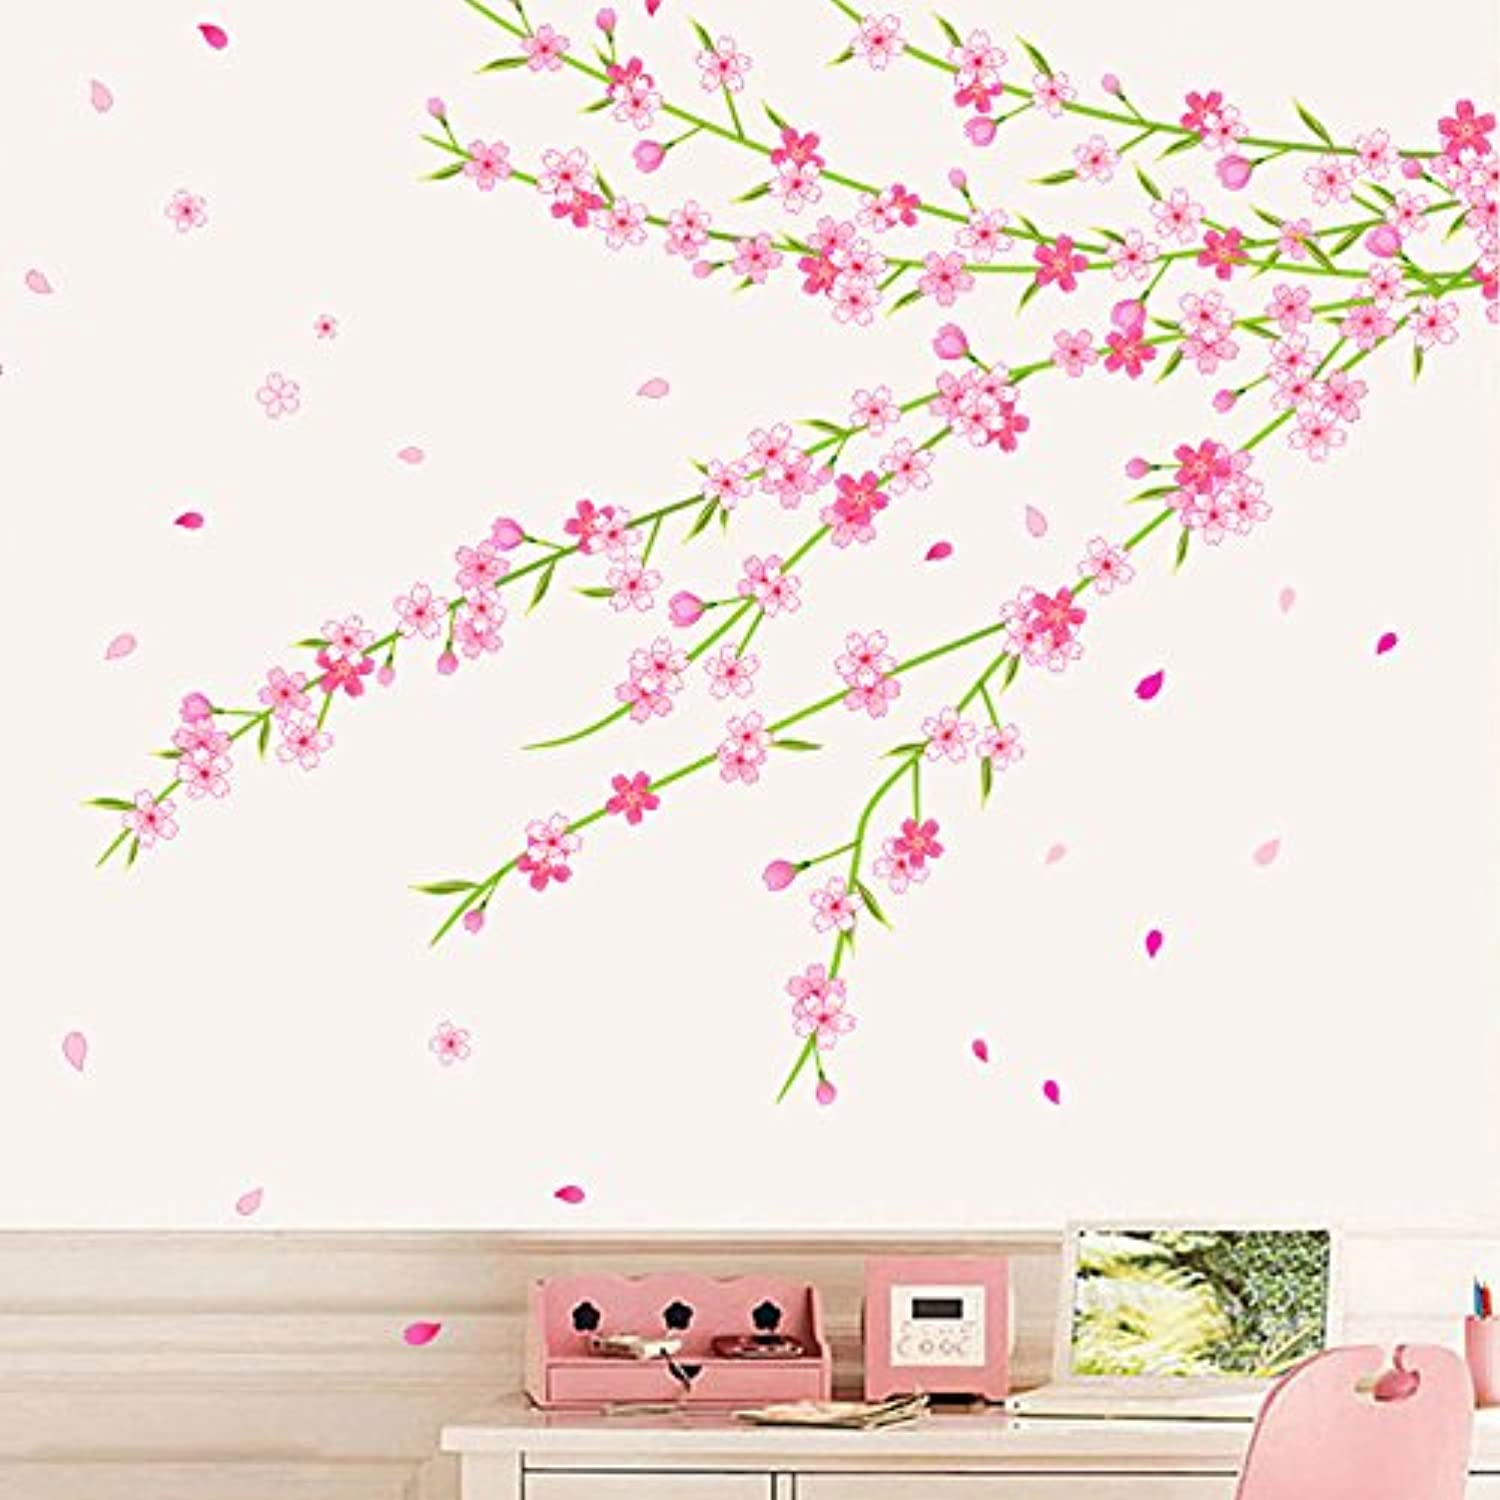 Znzbzt Wall Stickers Posters Peach Blossom Cherry Decals Container Walls are Decorated Living Room on The Wall Mount